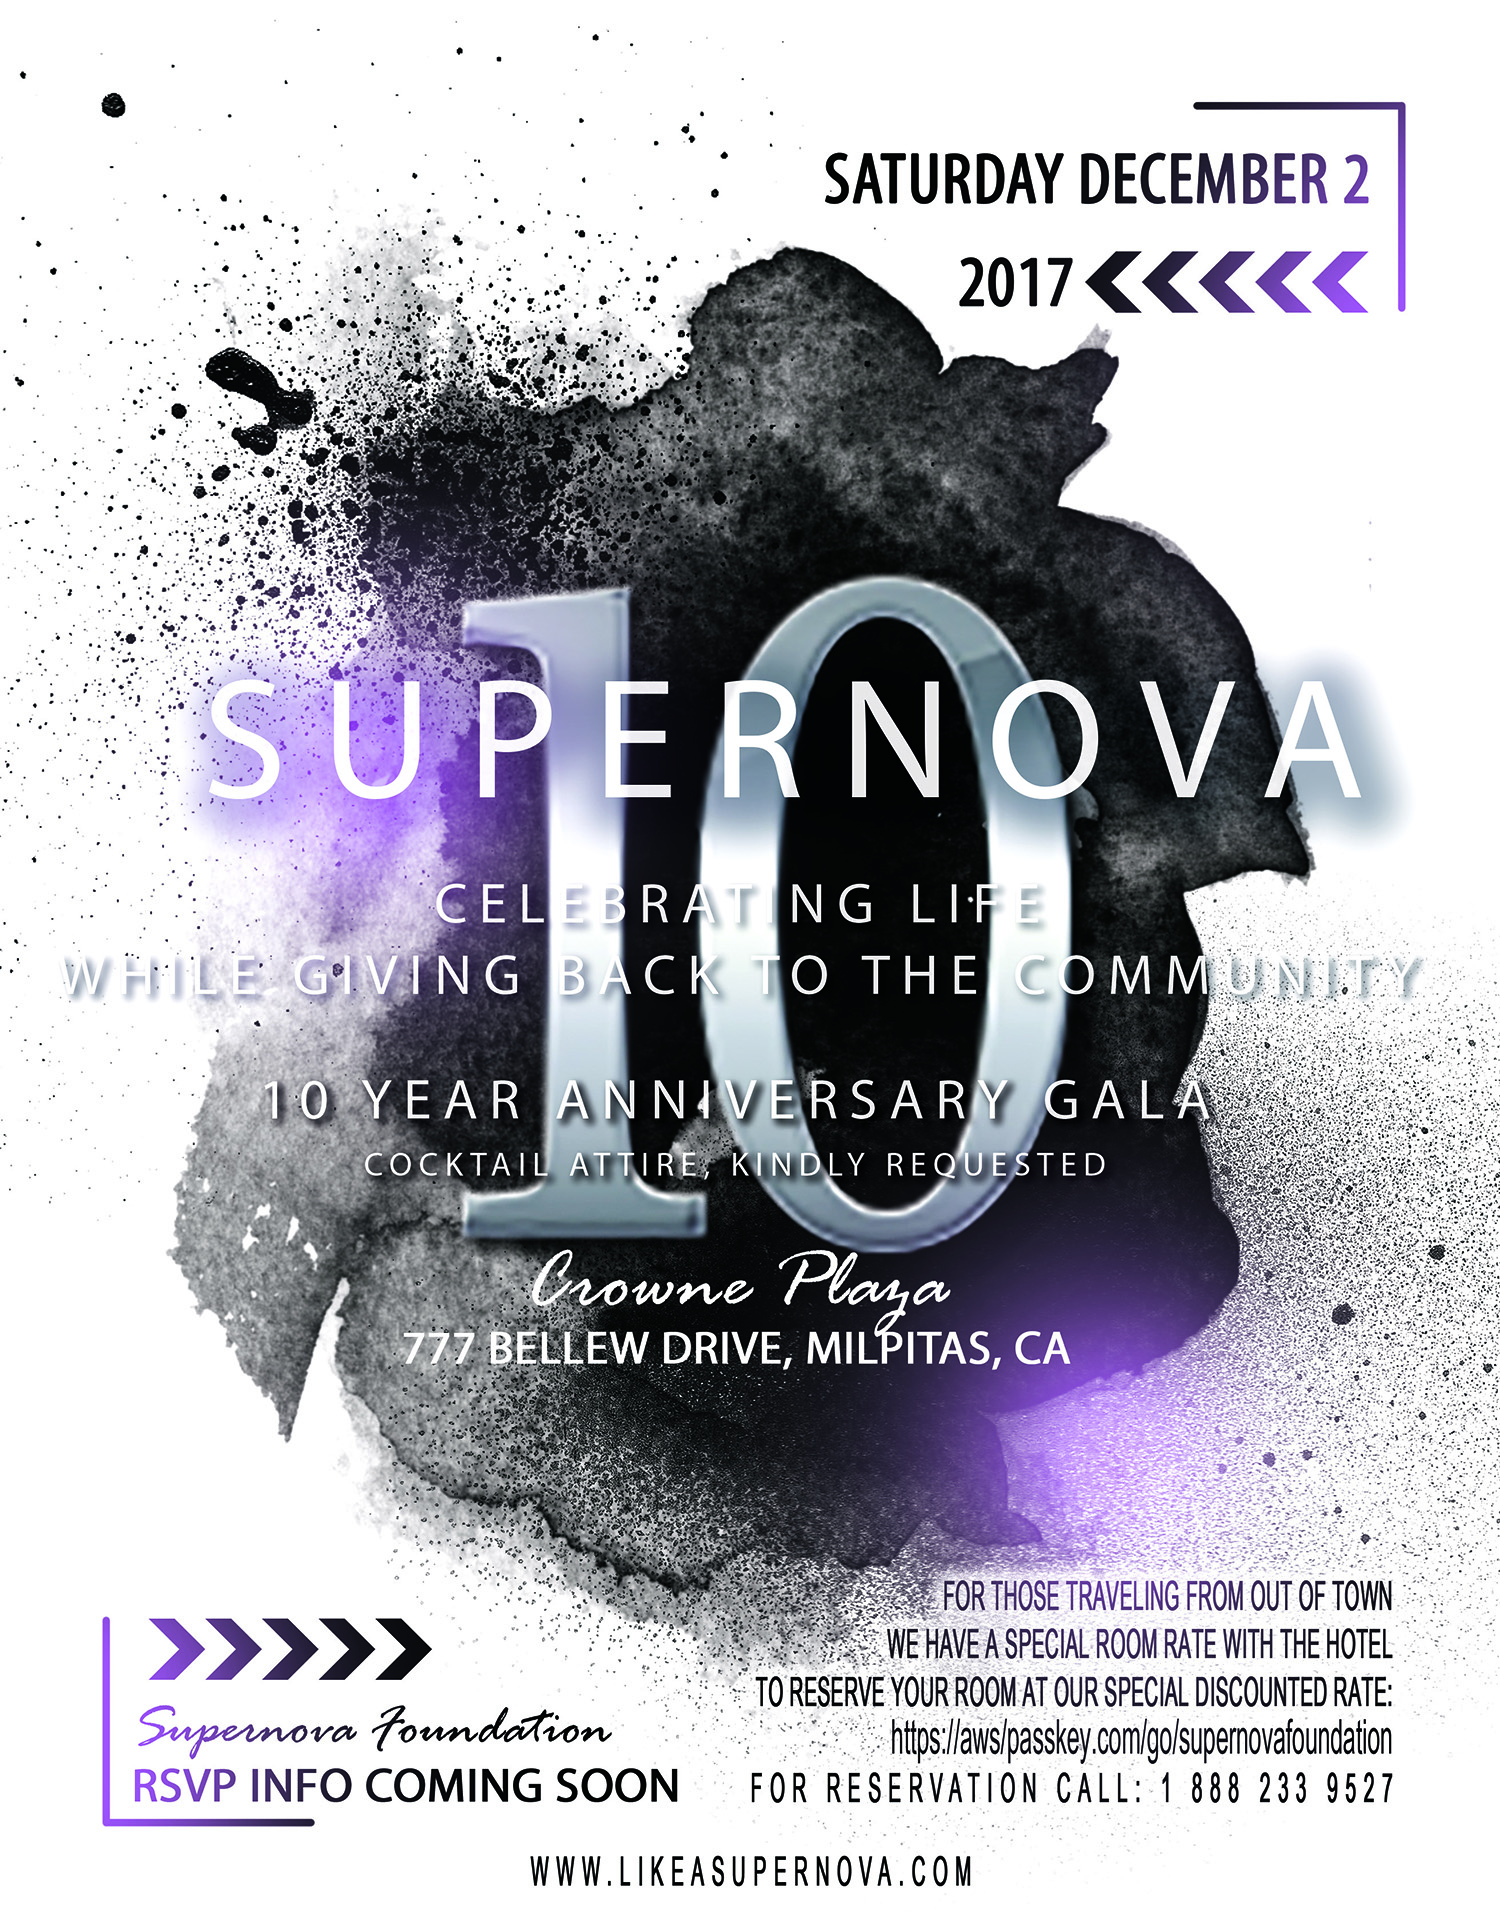 Get your tickets to Supernova 10 NOW! Only $25 for dinner + Event (Early Bird)!